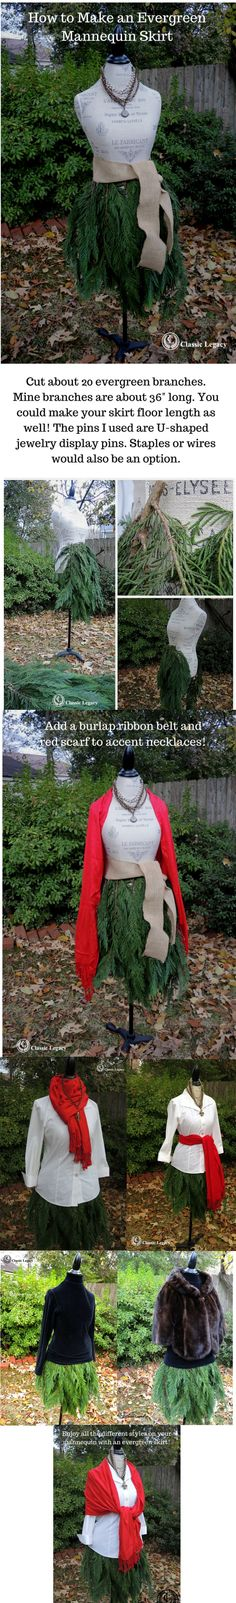 Learn how to create a mannequin with an evergreen skirt for the winter holidays! mannequin evergreenskirt displayforretail #CLcustomgifts